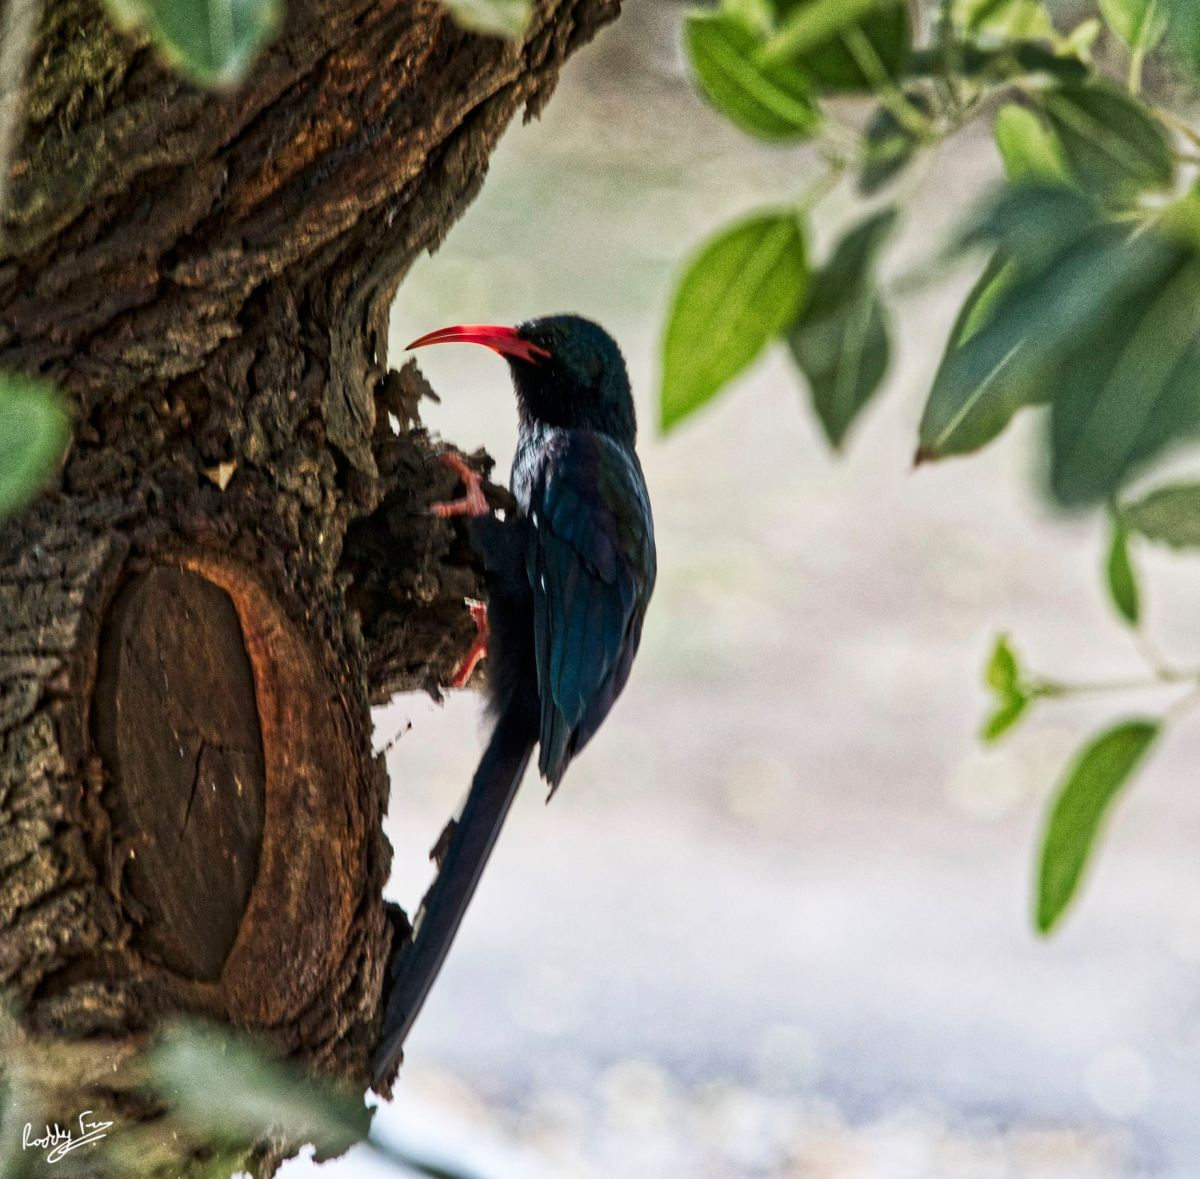 Wood hoopoe posing on a branch